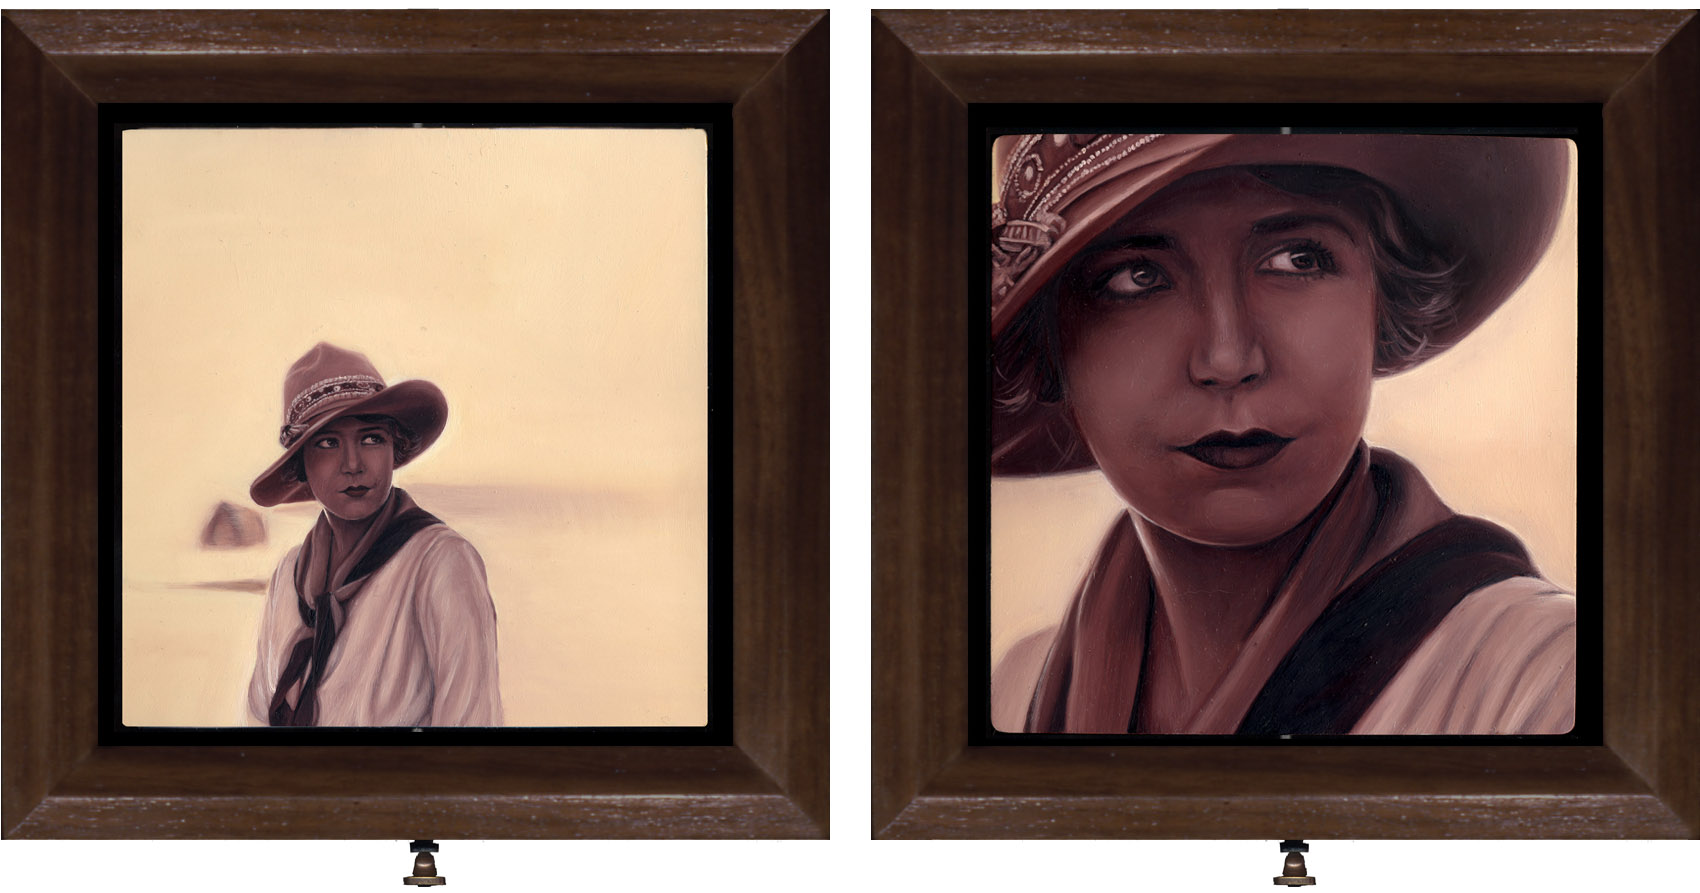 Double sided interactive oil painting of girl in the desert by Rebecca Luncan